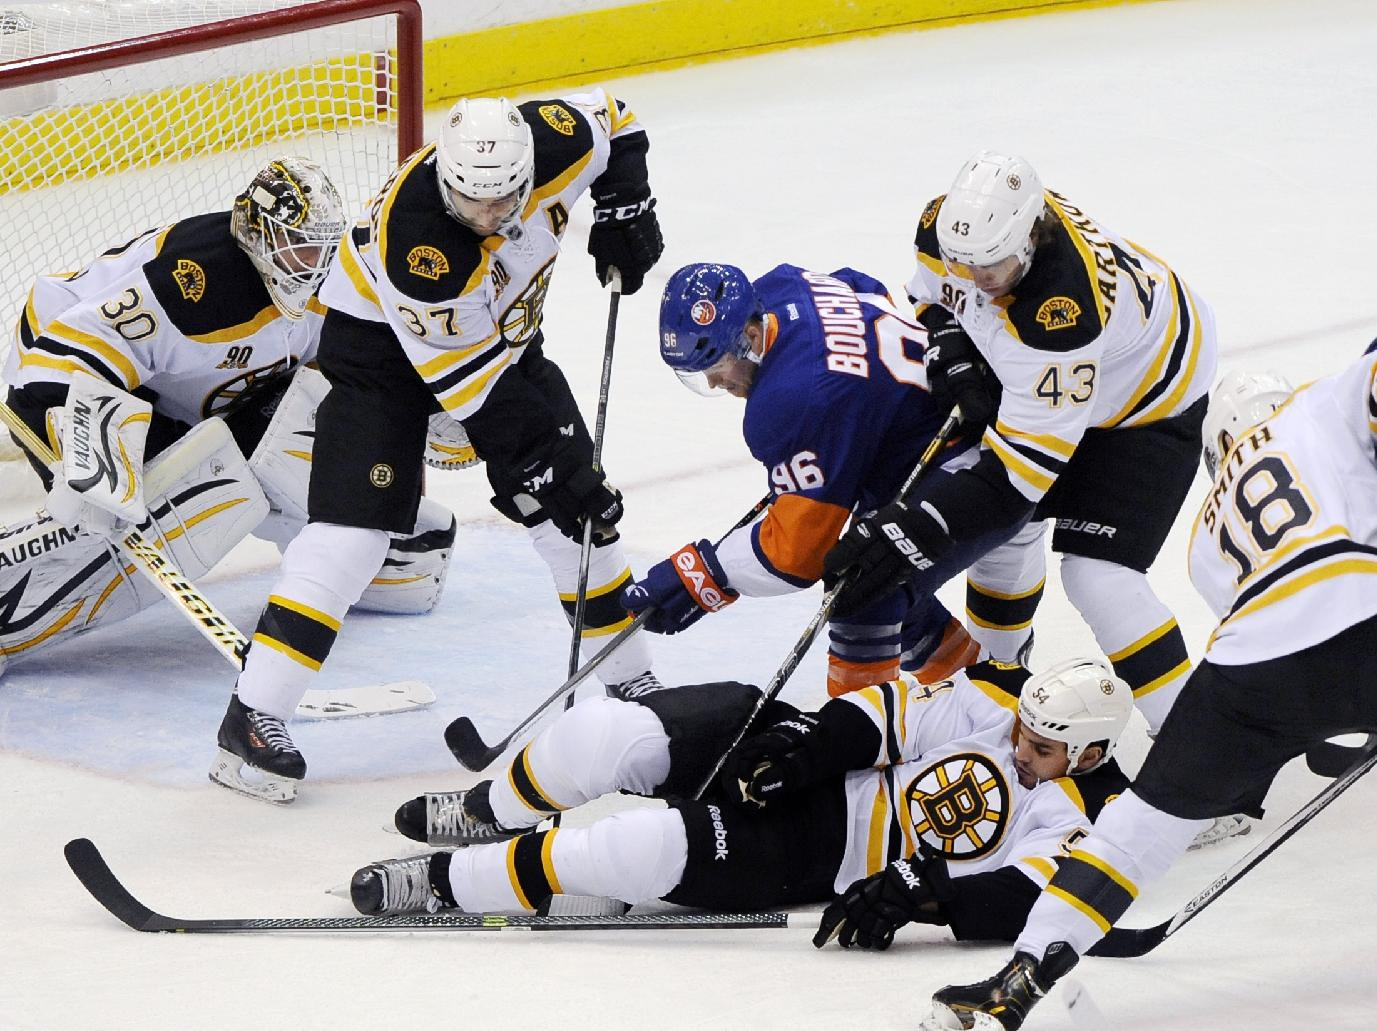 Boston Bruins' Patrice Bergeron (37),  Matt Bartkowski (43), Reilly Smith (18) surround New York Islanders' Pierre-Marc Bouchard (96) as Bouchard tries to retrieve the puck under Boston Bruins' Adam McQuaid (54) in the first period of an NHL hockey game at the Nassau Coliseum on Saturday, Nov. 2, 2013, in Uniondale, N.Y